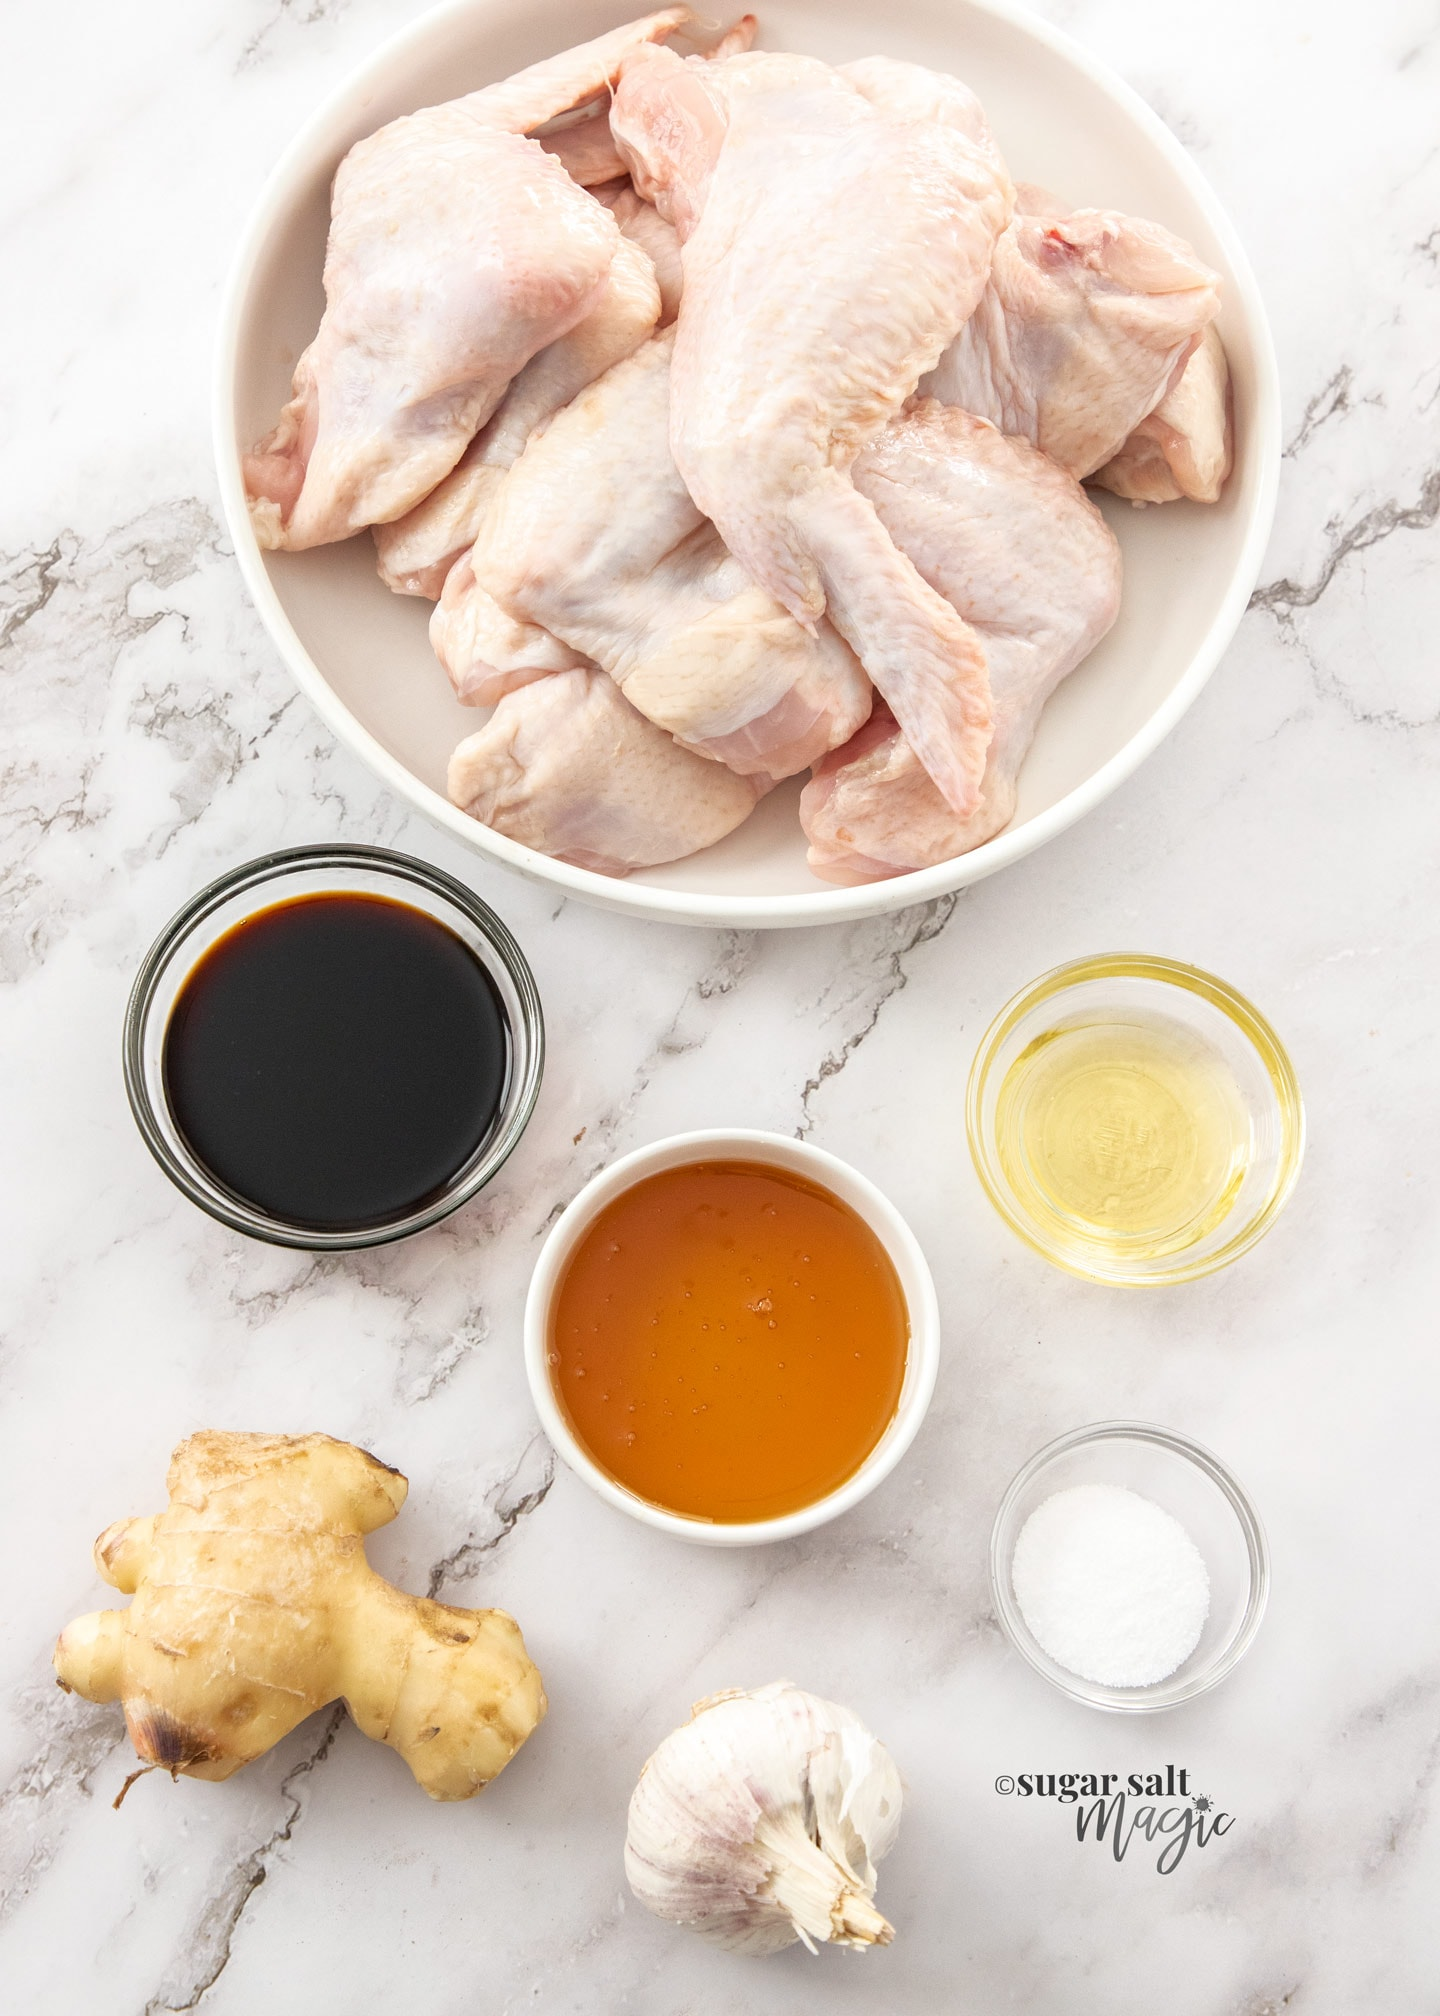 Ingredients for sticky chicken wings on a marble bench top.